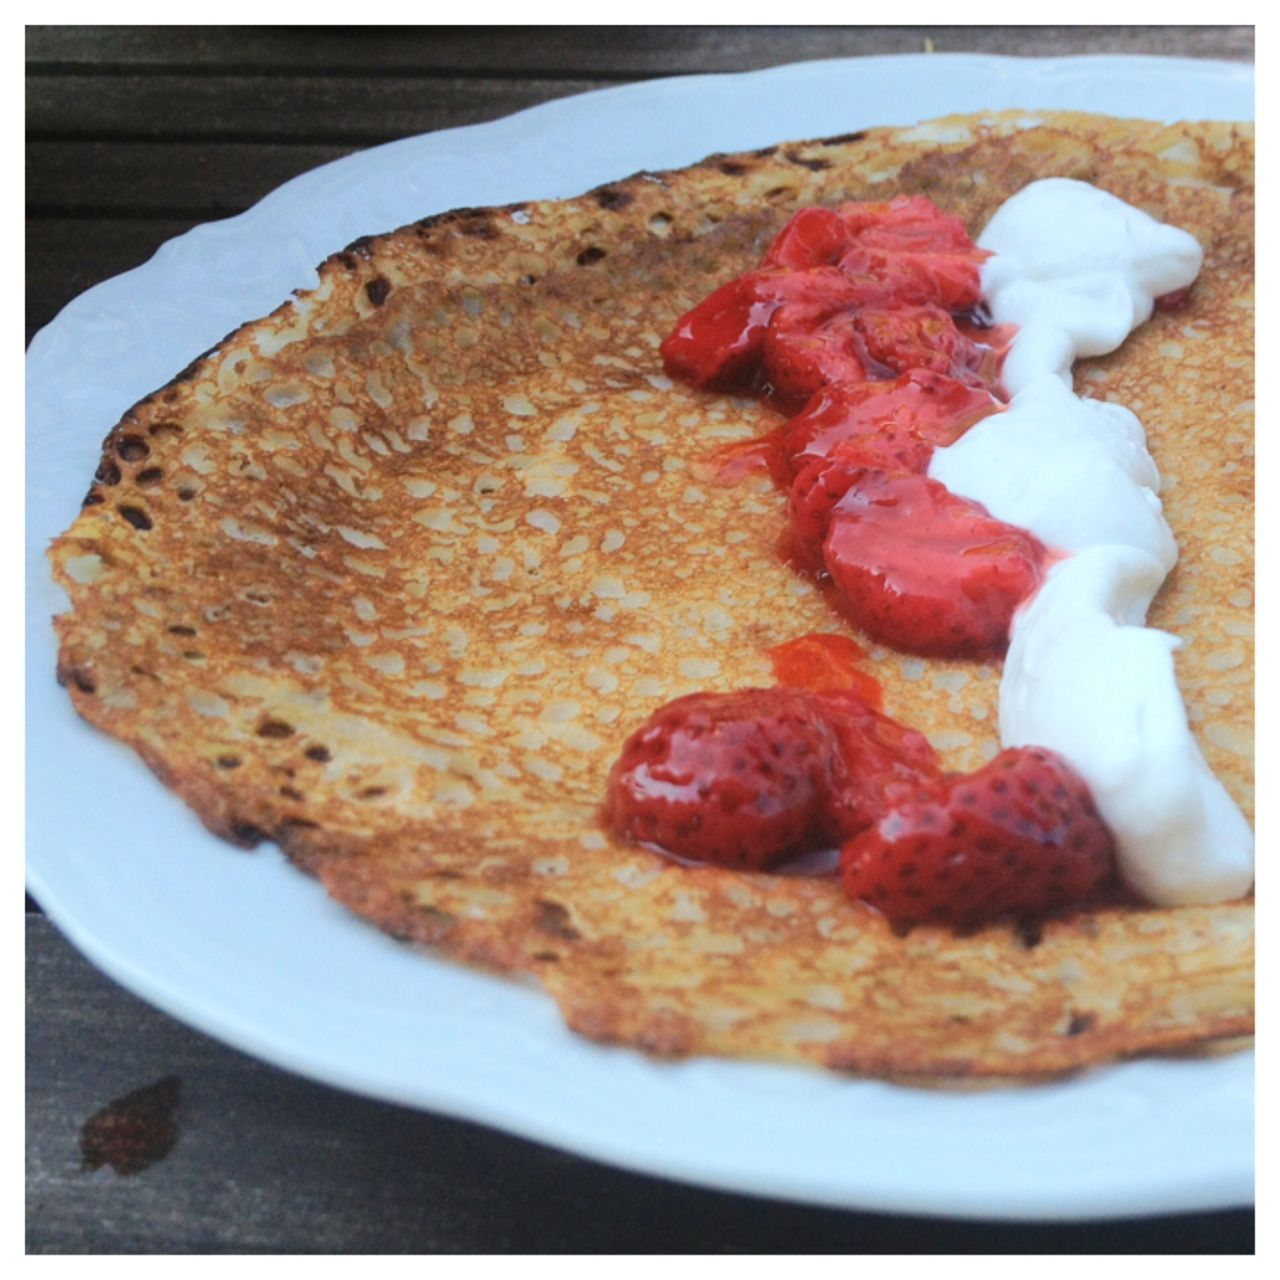 Egg, gluten and dairy free crepes